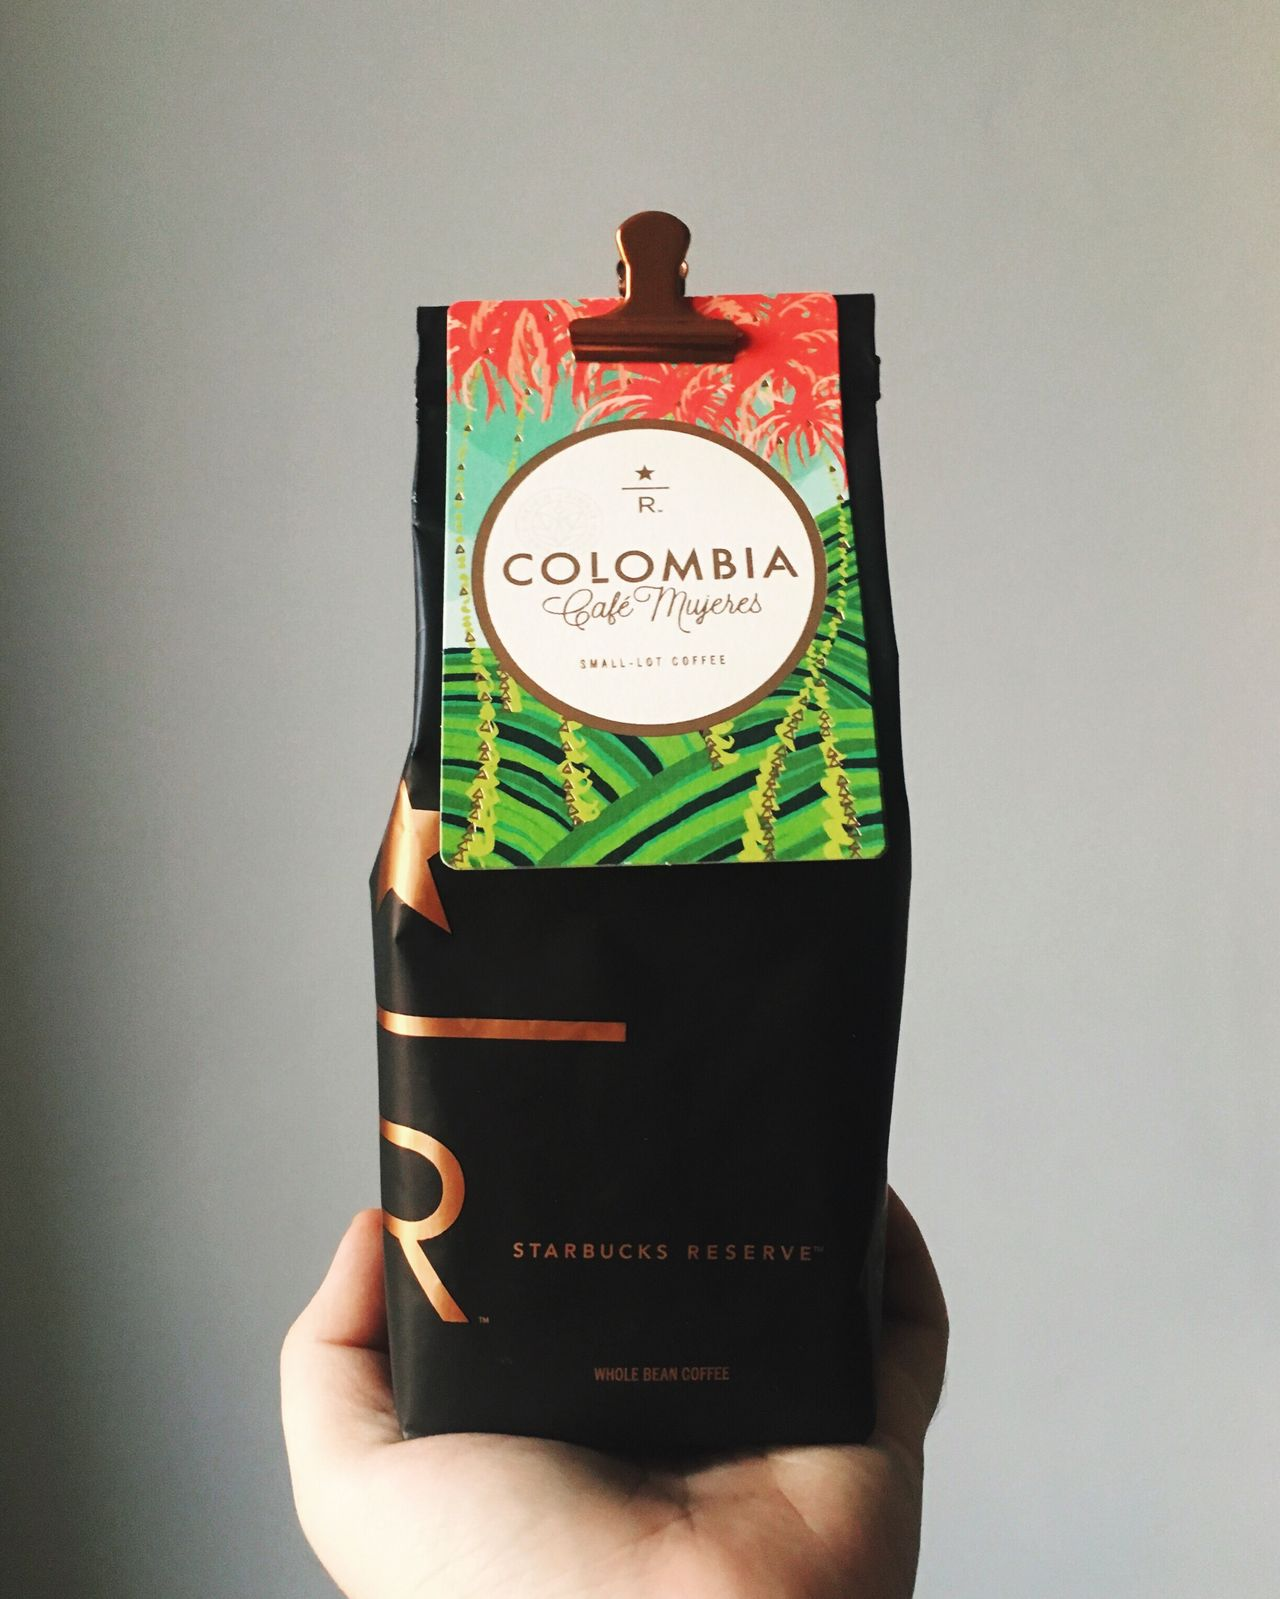 Reserve coffees are my favorite addiction. Human Hand Human Body Part Real People Close-up Text Holding One Person Time Indoors  White Background Day Coffee Starbucks Starbucks Reserve Reserve Blend Columbia Cafe Mujeres